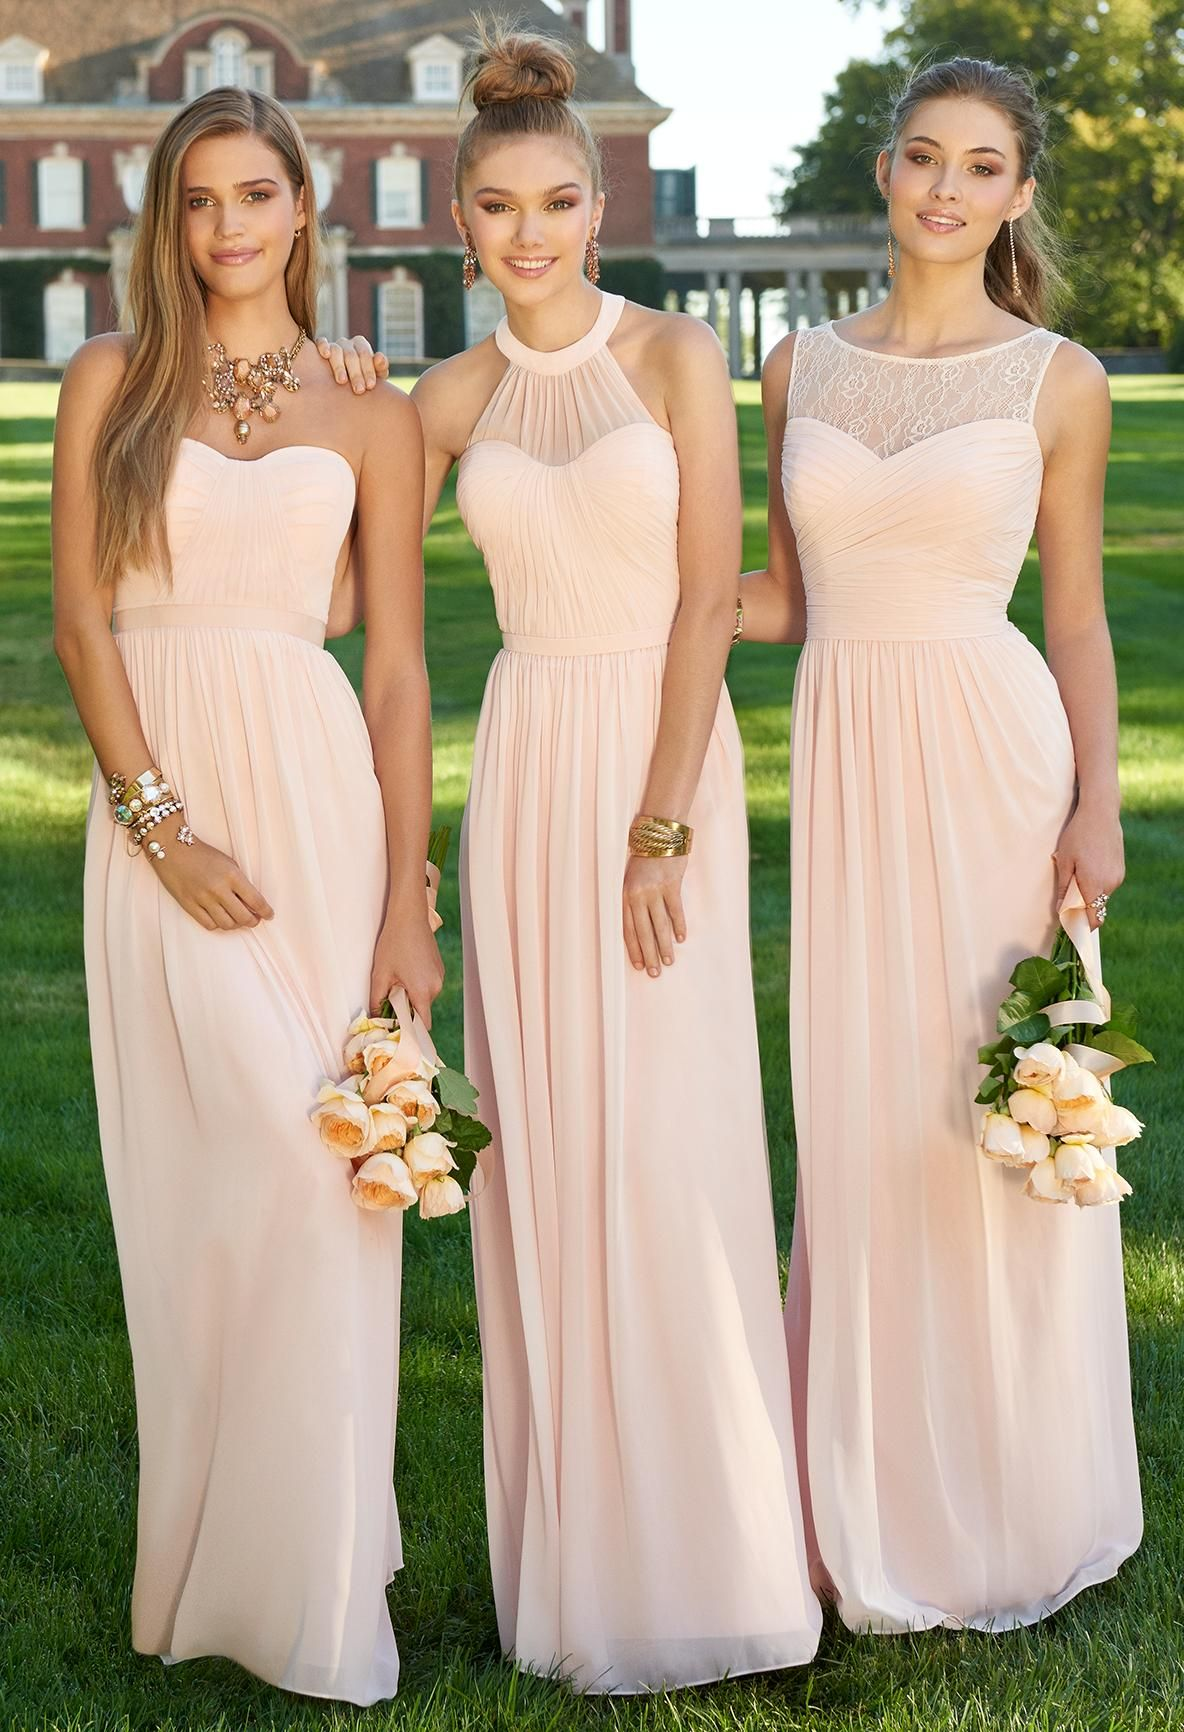 Part Of Our New Bridesmaid Program Beautiful Looks For Your S Now With Camille La Vie